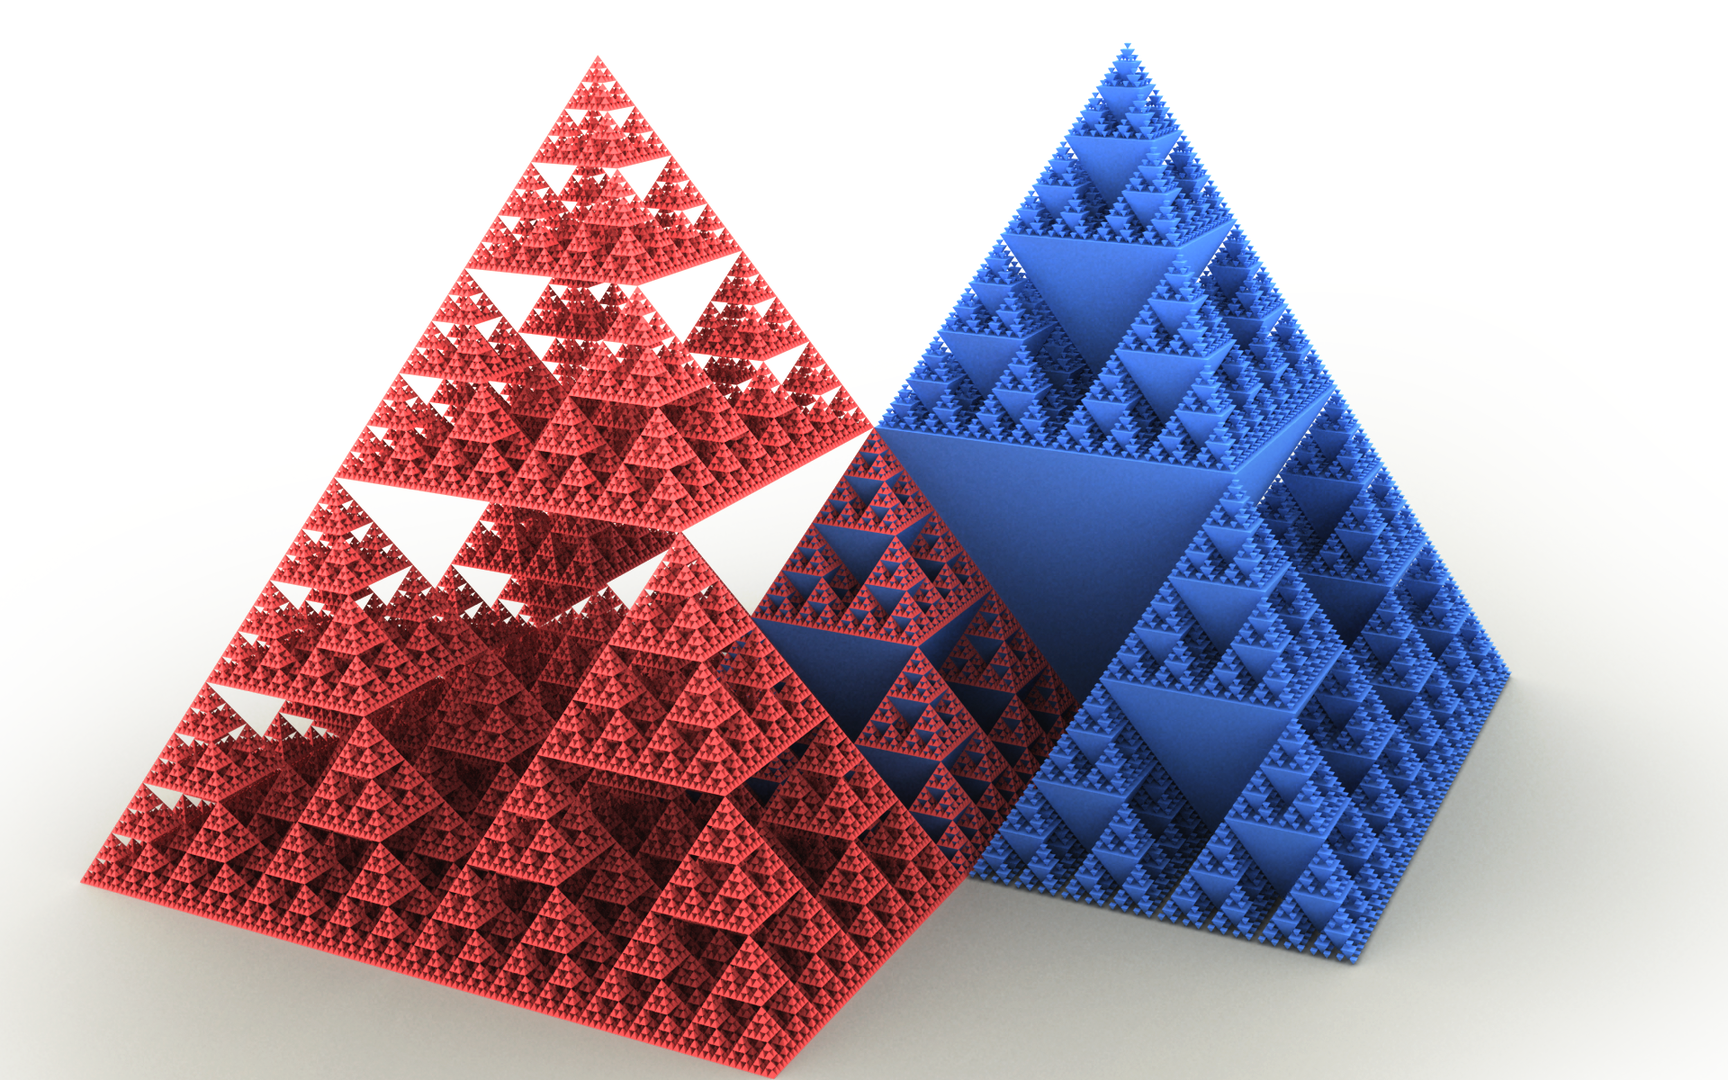 1728px-Sierpinski_pyramid.png Sierpinski pyramids, one red and one blue, the red one is partially nested inside the blue one